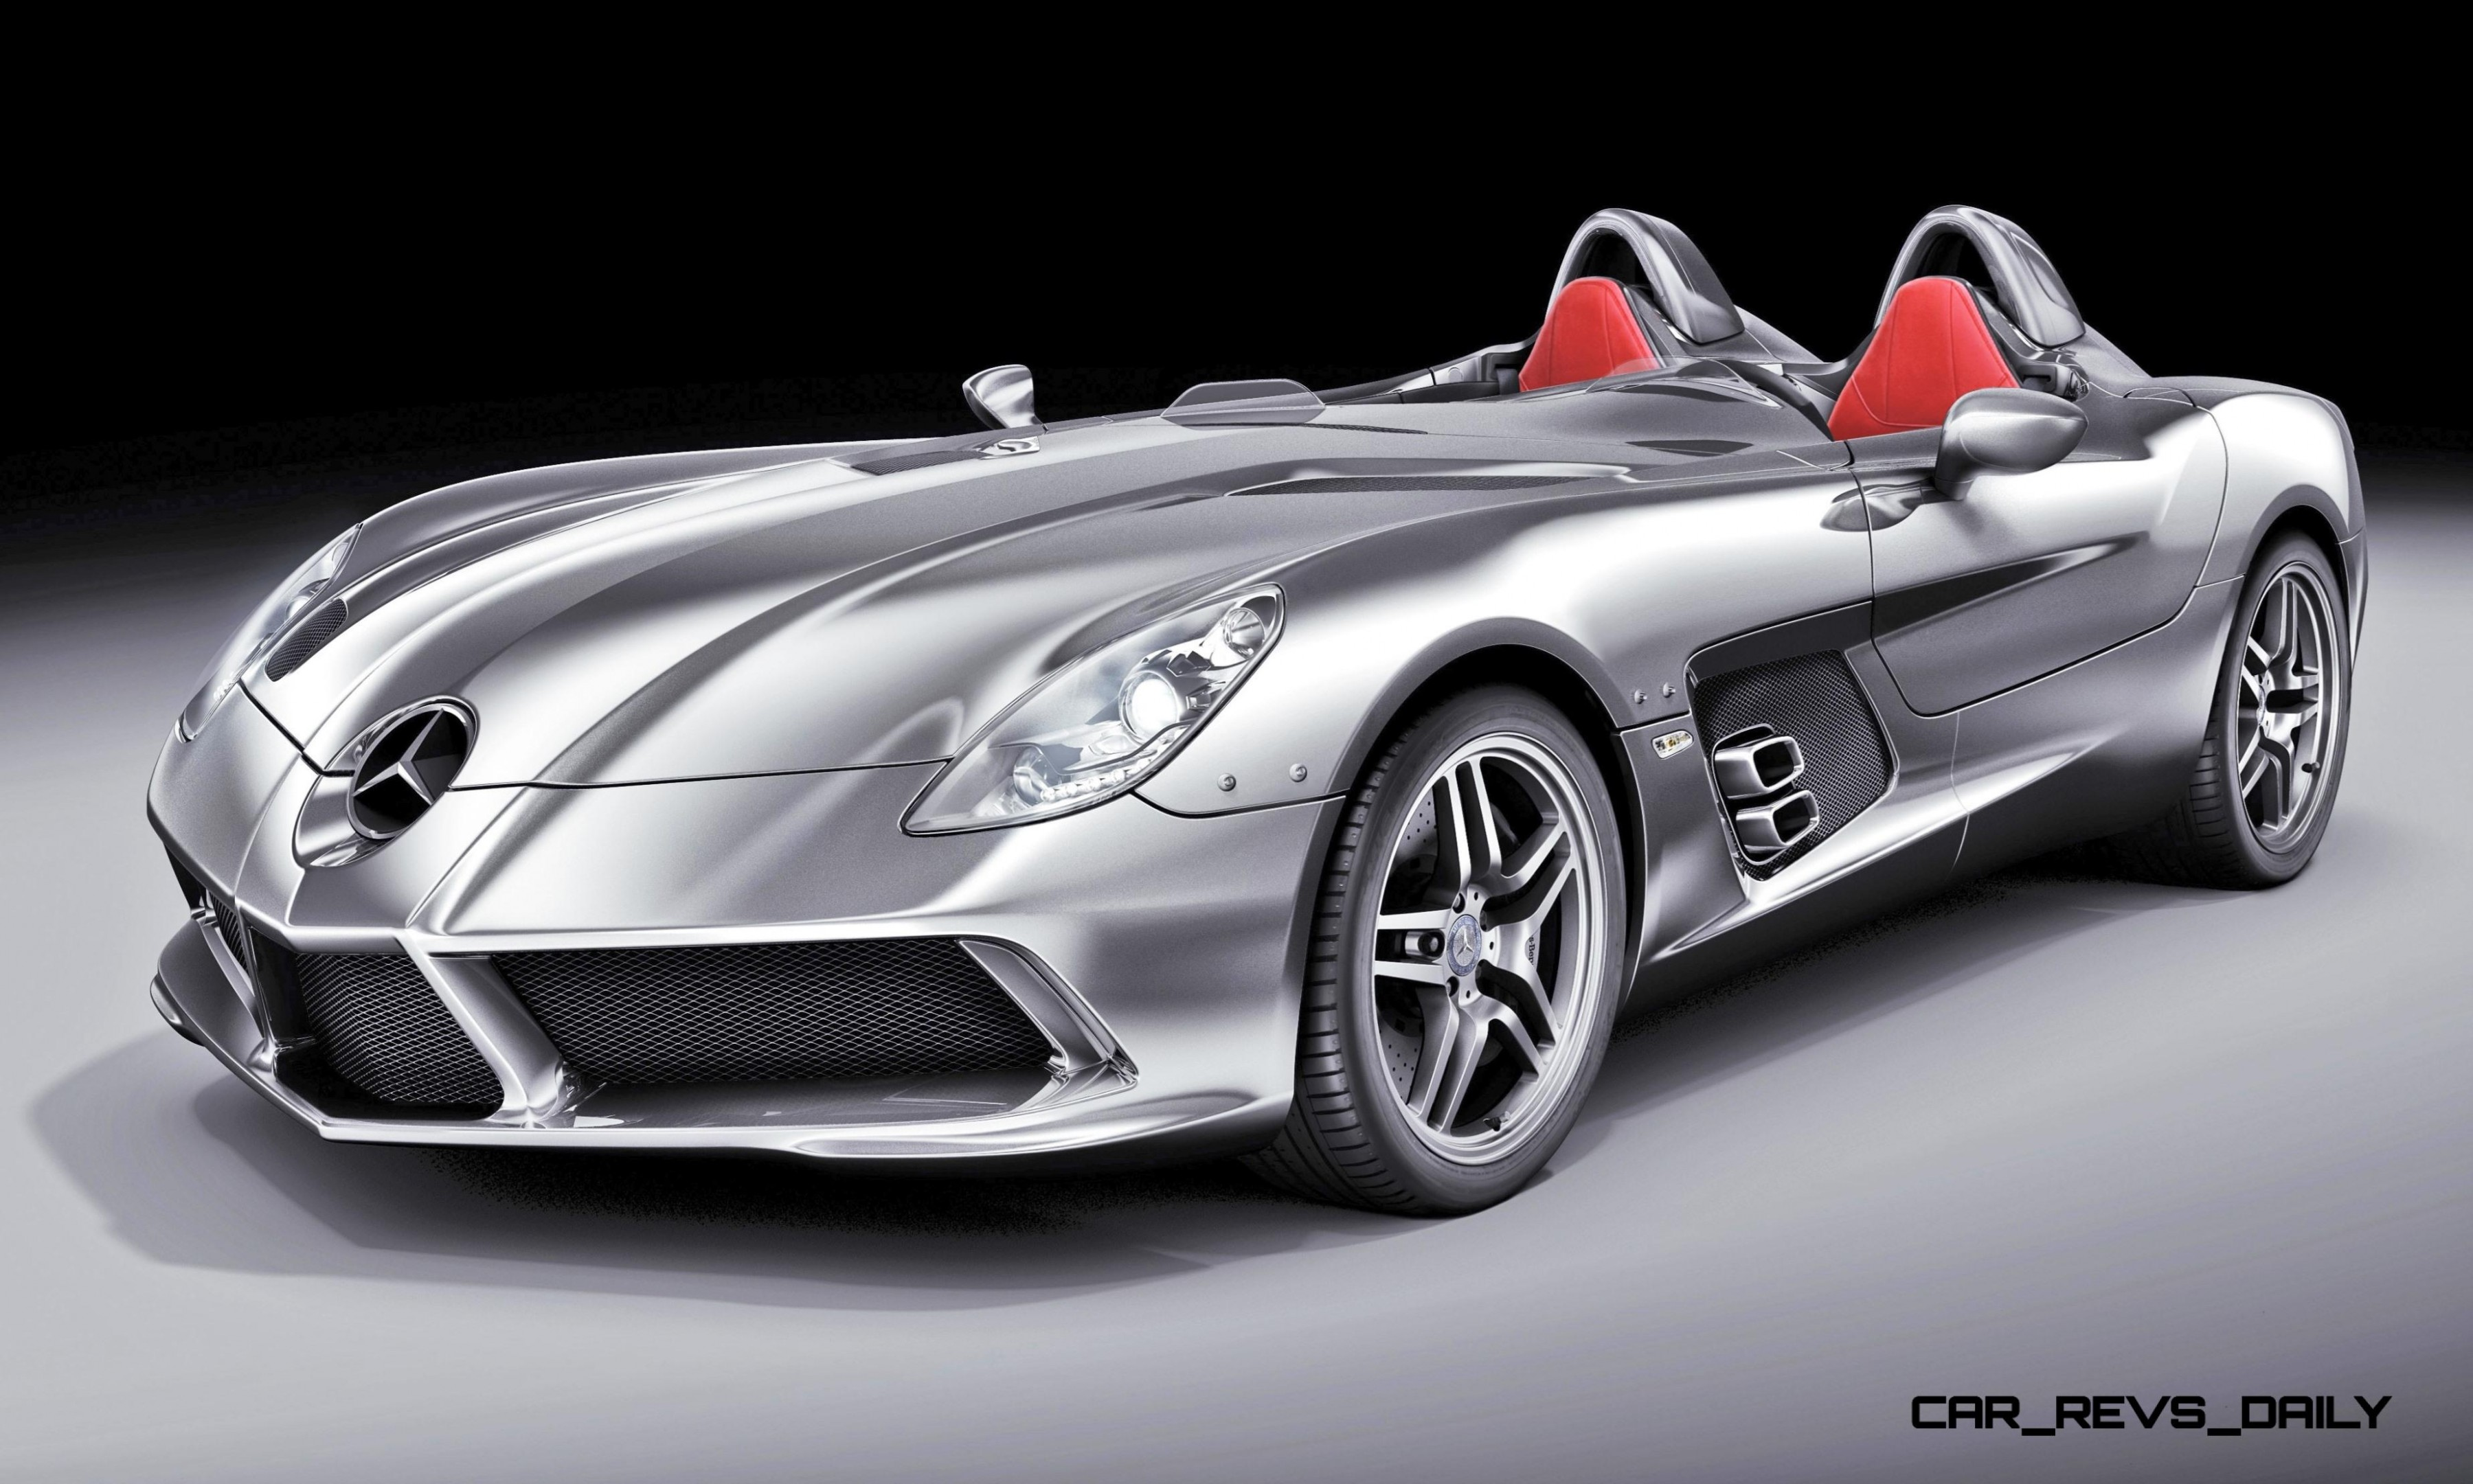 hypercar heroes 2009 mercedes benz slr mclaren 722 stirling moss. Black Bedroom Furniture Sets. Home Design Ideas